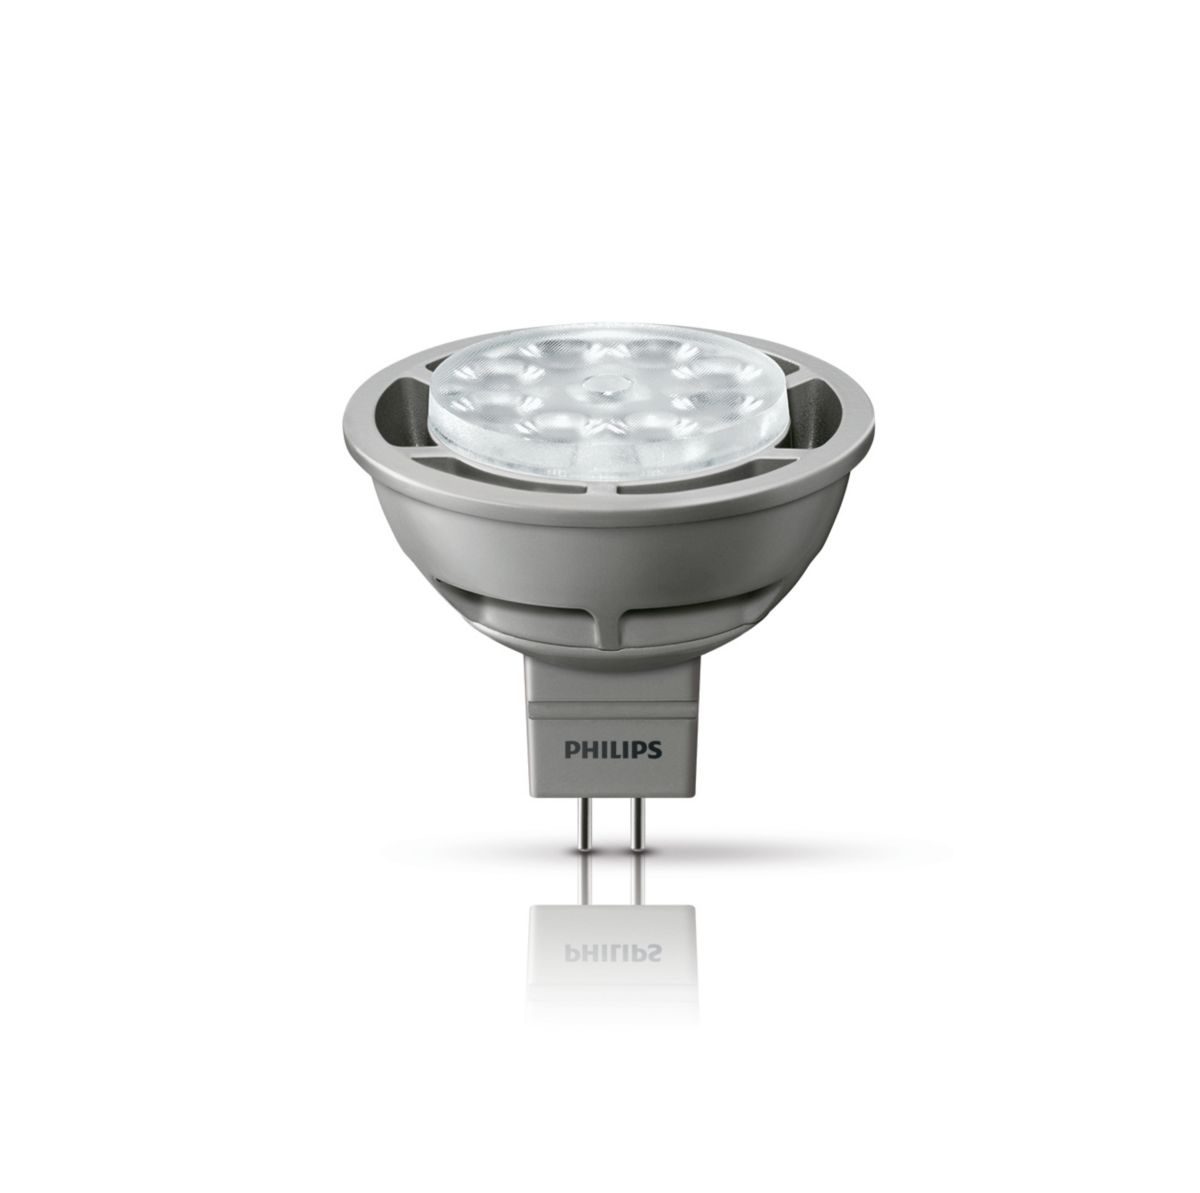 Catalogo Lamparas Philips Mr16 Gu10 Par16 Led Focos Philips Lighting